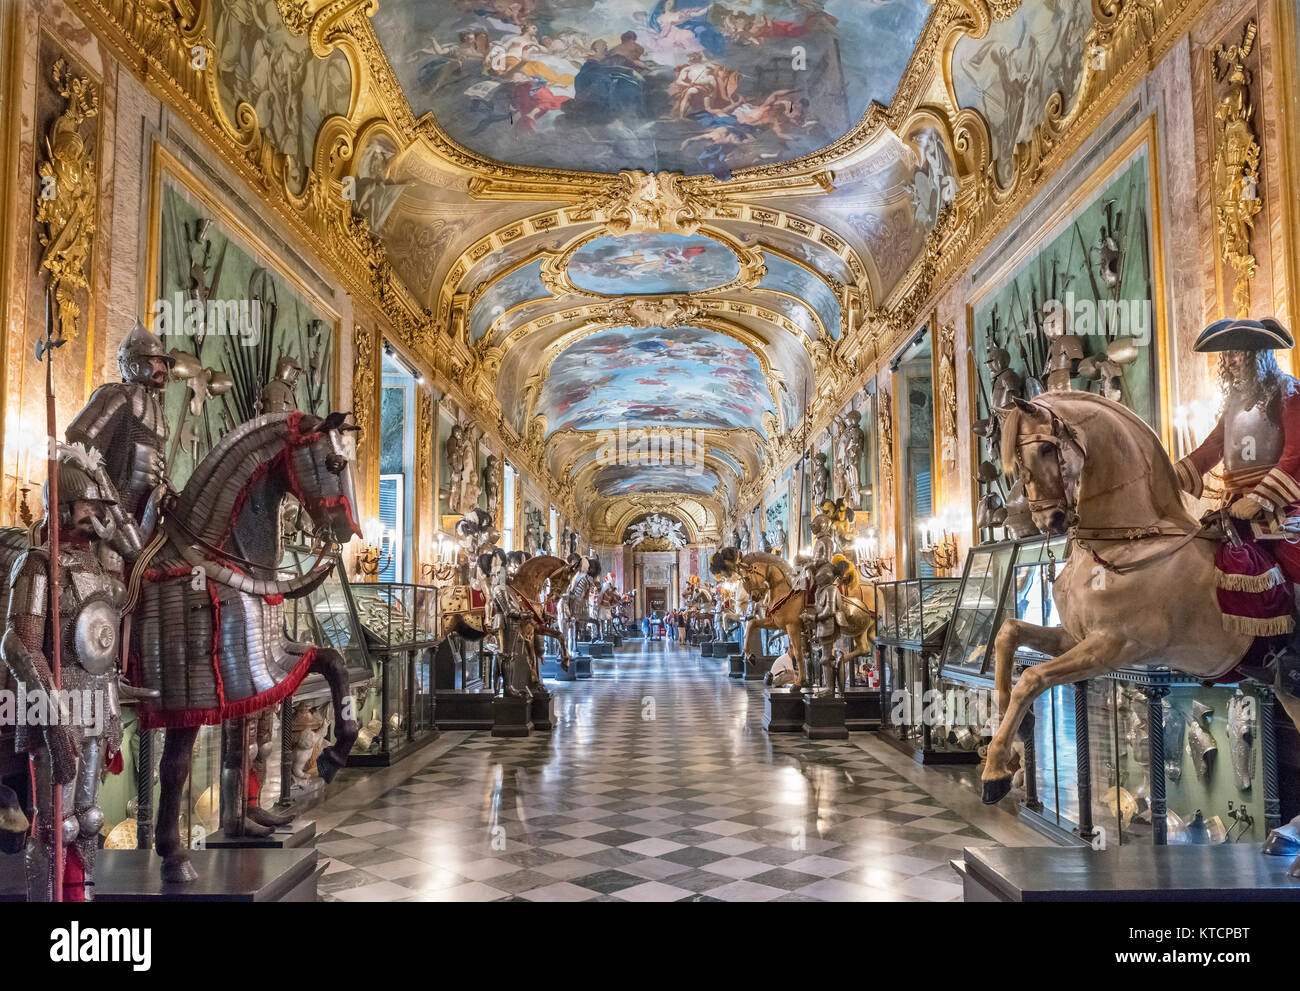 The Royal Armoury in the Beaumont Gallery, Palazzo Reale,Turin, Piedmont, Italy - Stock Image